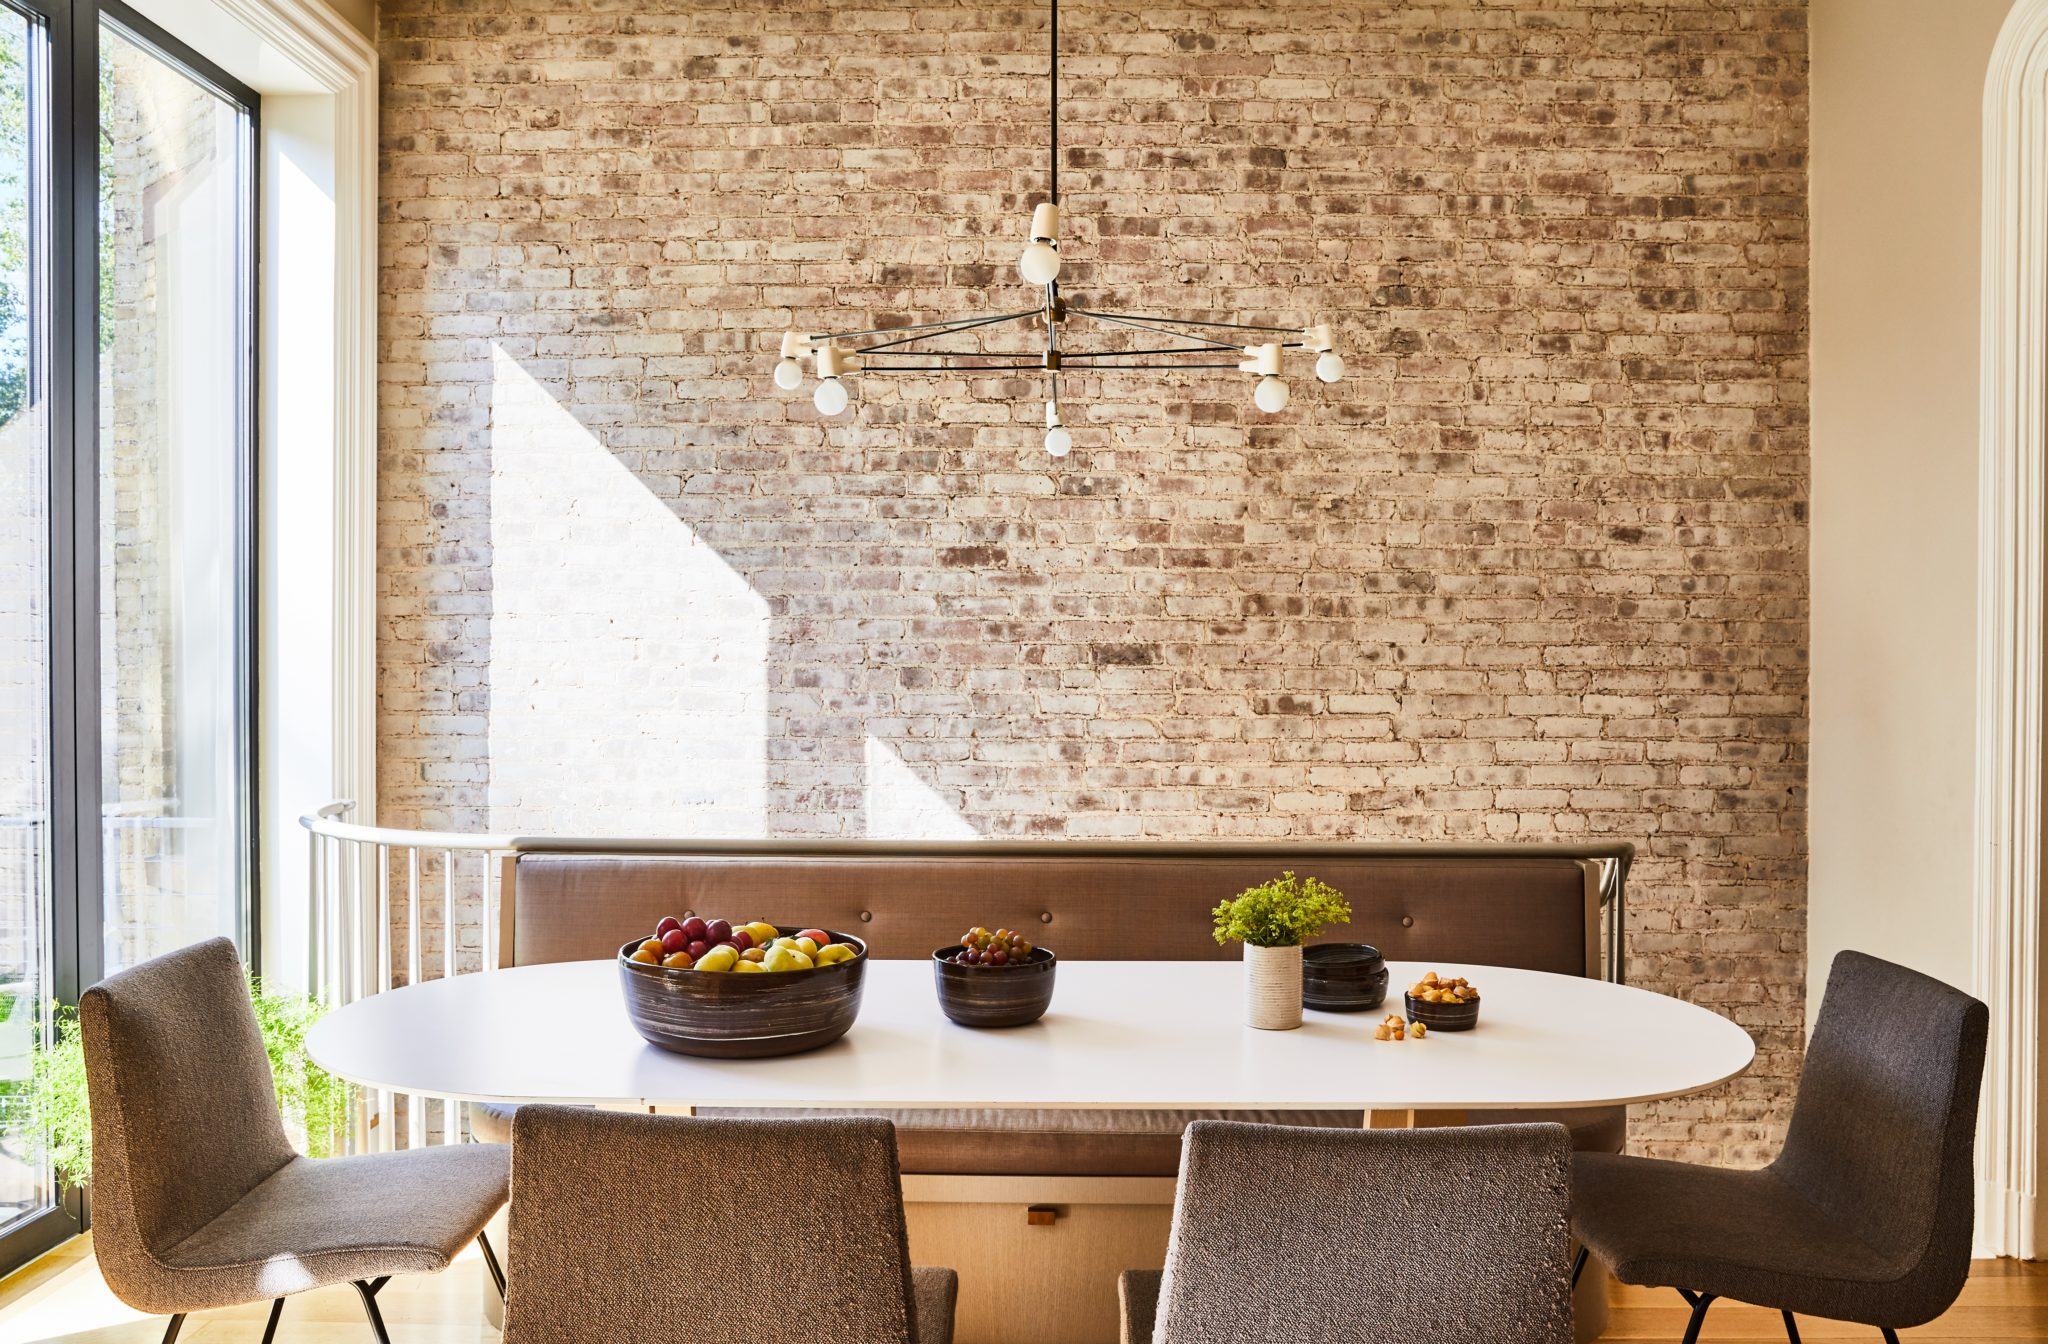 Just outside the kitchen area, a contemporary chandelier from Brendan Ravenhill Studio contrasts with the industrial brick wall, original to the house. NR Wood Design built the custom curved dining table and cozy banquette, the later of which Enger outfitted in silvery fabric from Holly Hunt. The textured dining chairs are from Ligne Roset.